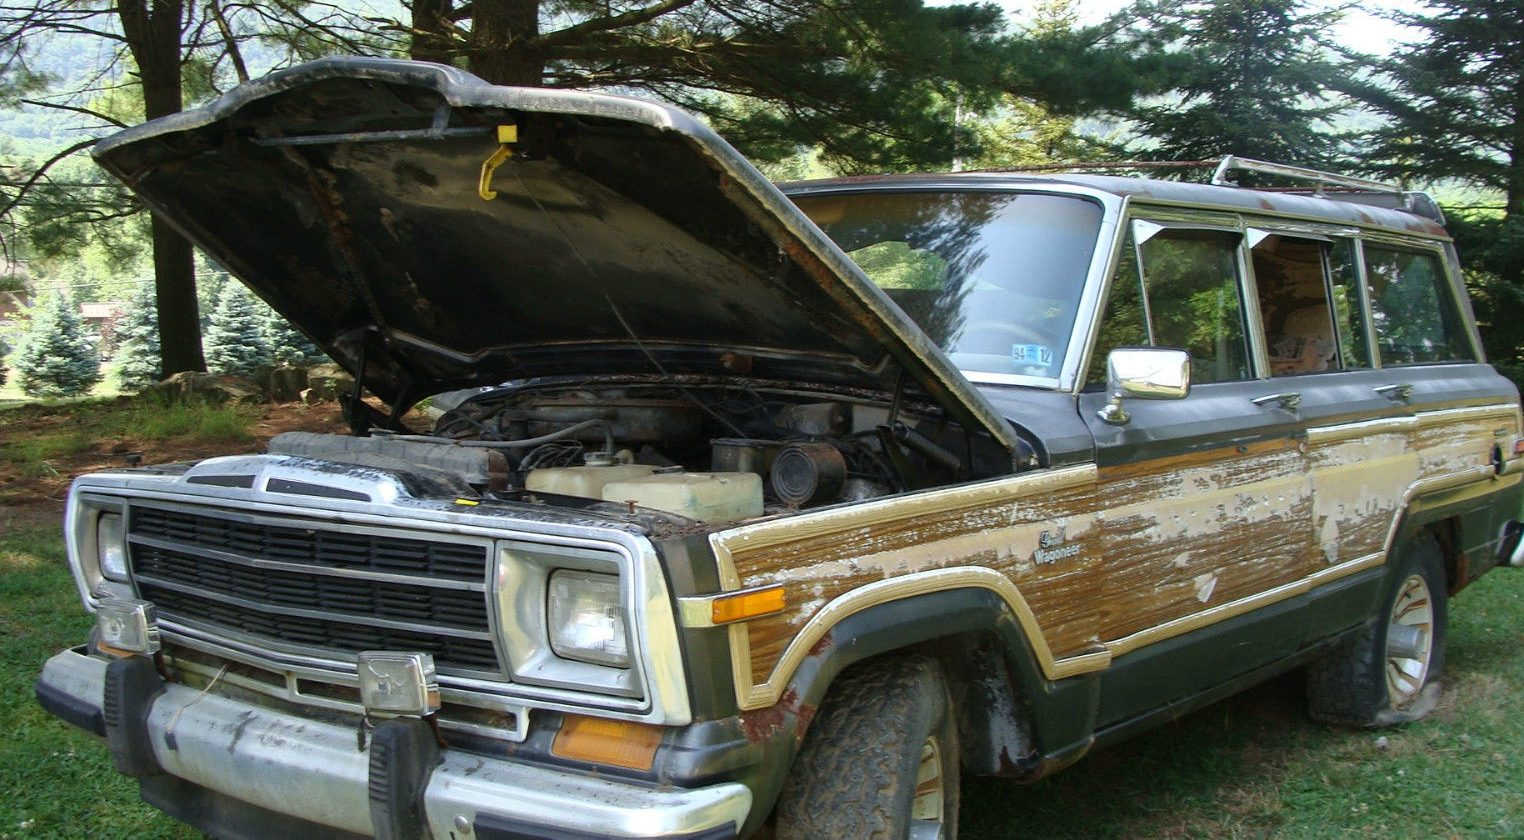 Jeep Grand Wagoneer For Sale >> Worth Saving? 1986 Jeep Grand Wagoneer